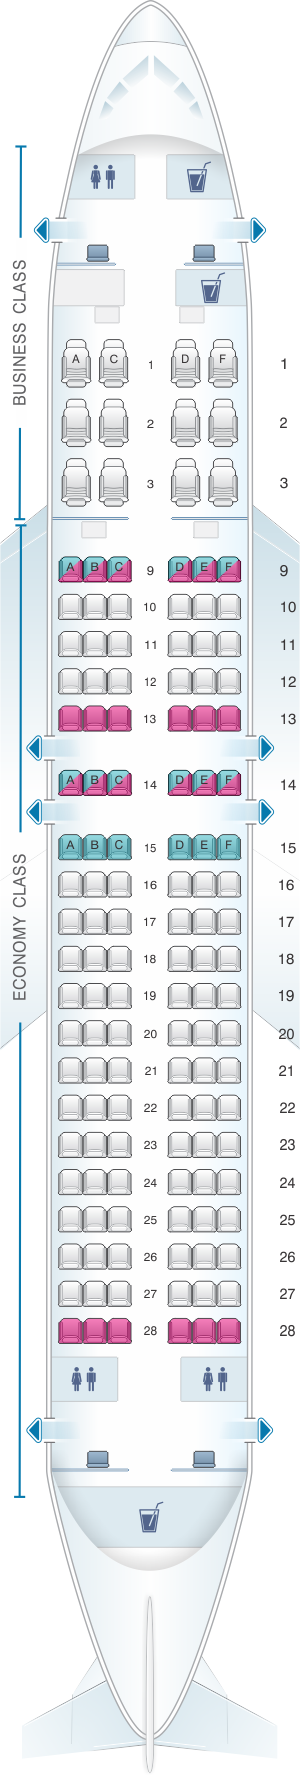 Seat map for Qatar Airways Airbus A320 200 132pax